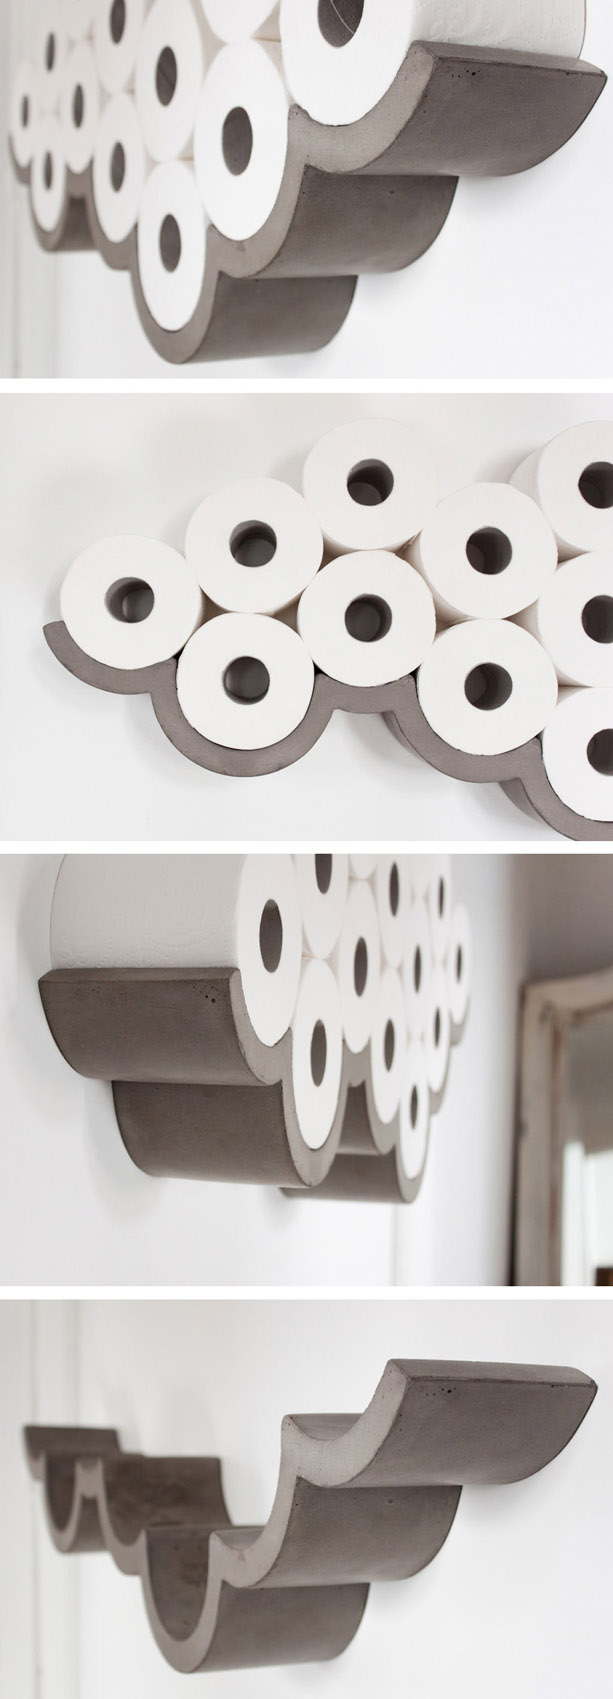 Covered Toilet Paper Storage 21 Best Toilet Paper Storage Ideas Cool Diys